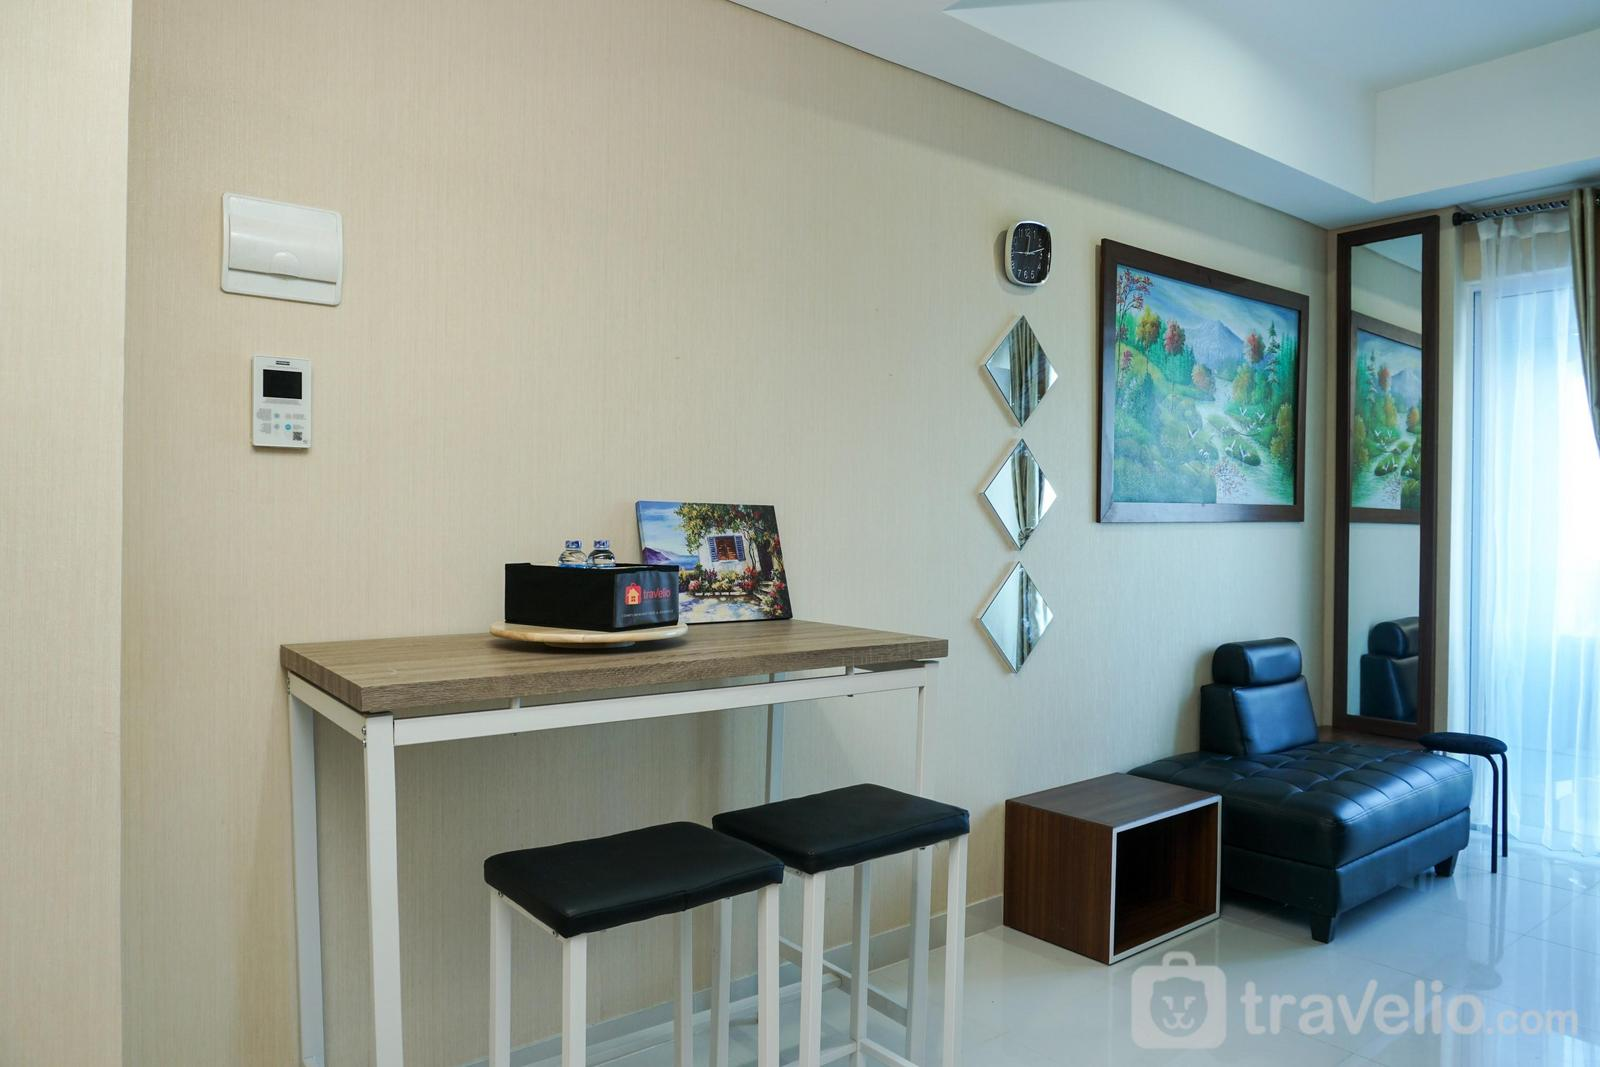 Apartemen Puri Mansion - Deluxe and Comfortable 1BR Puri Mansion Apartment By Travelio